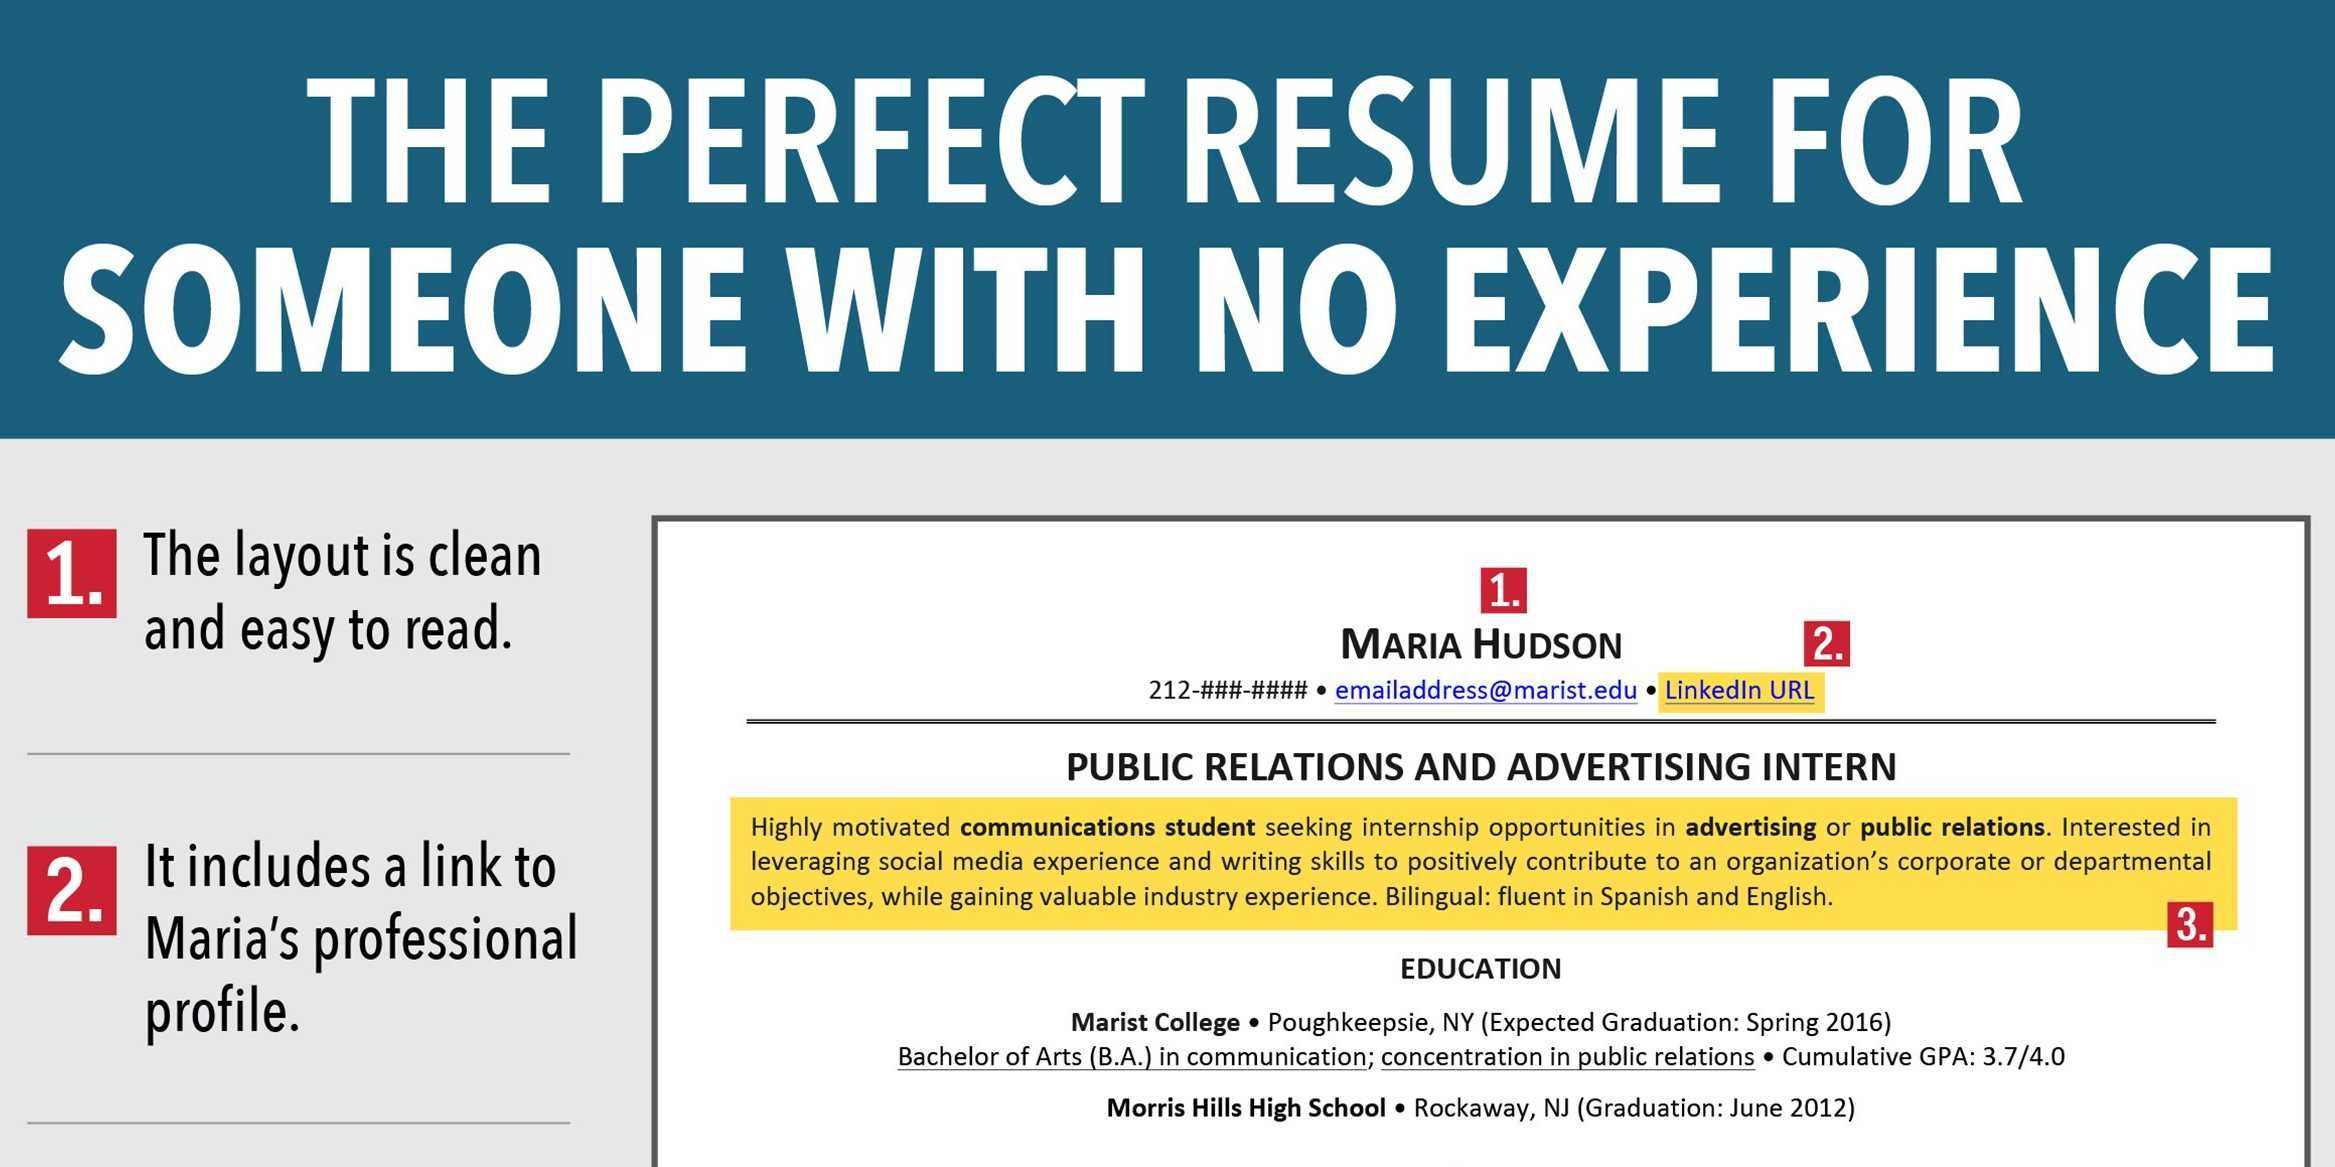 Resume For Someone With No Experience Fair 7 Reasons This Is An Excellent Resume For Someone With No Experience .